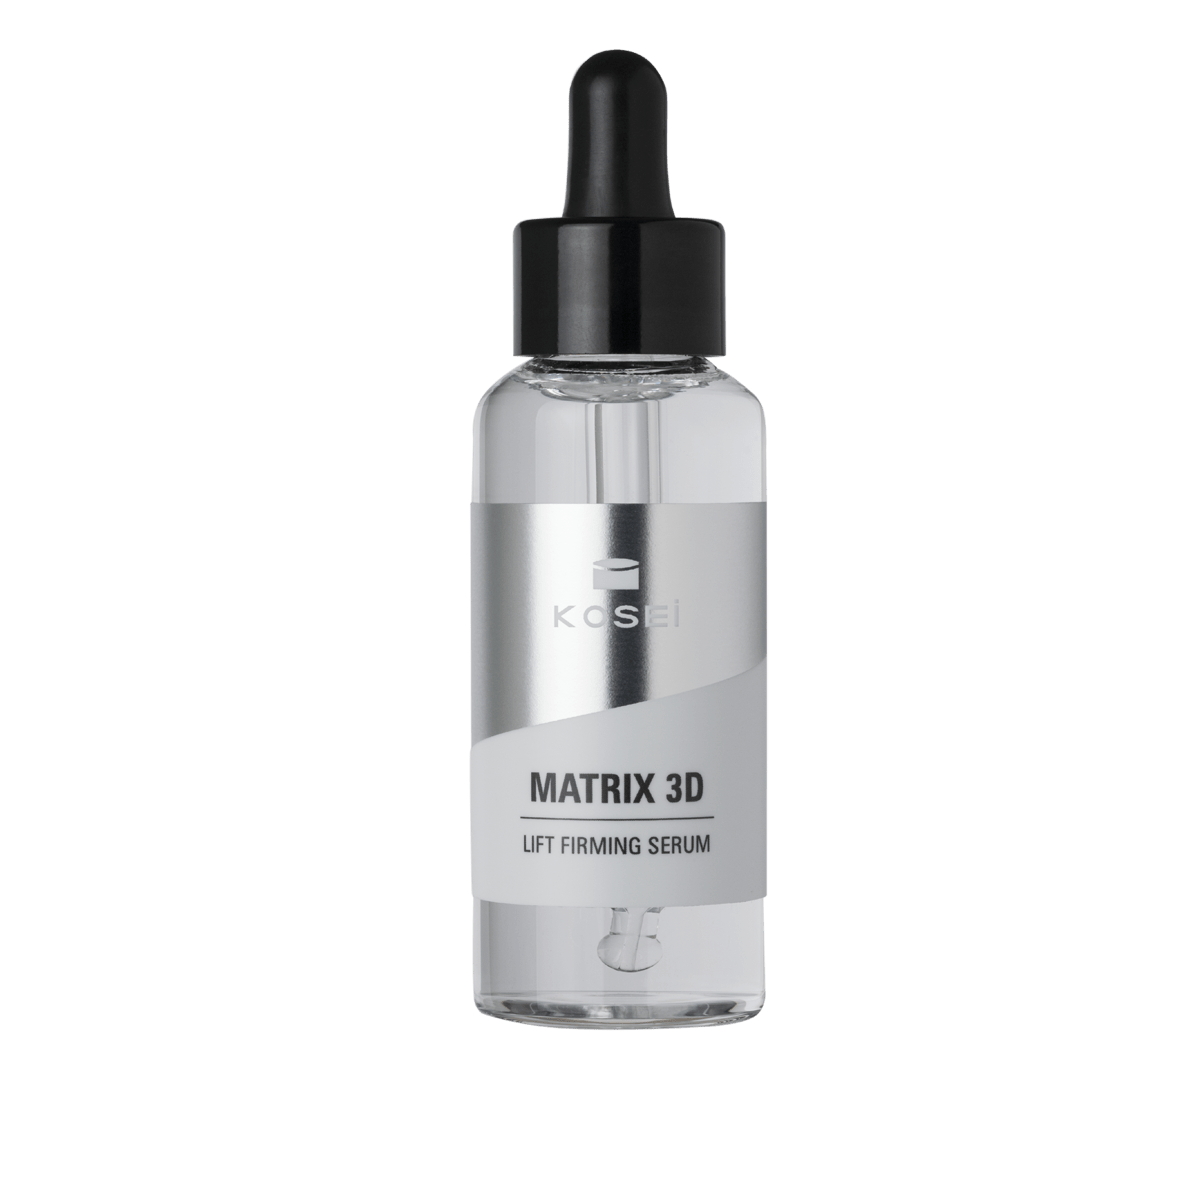 MATRIX 3D Lift firming serum 50ml